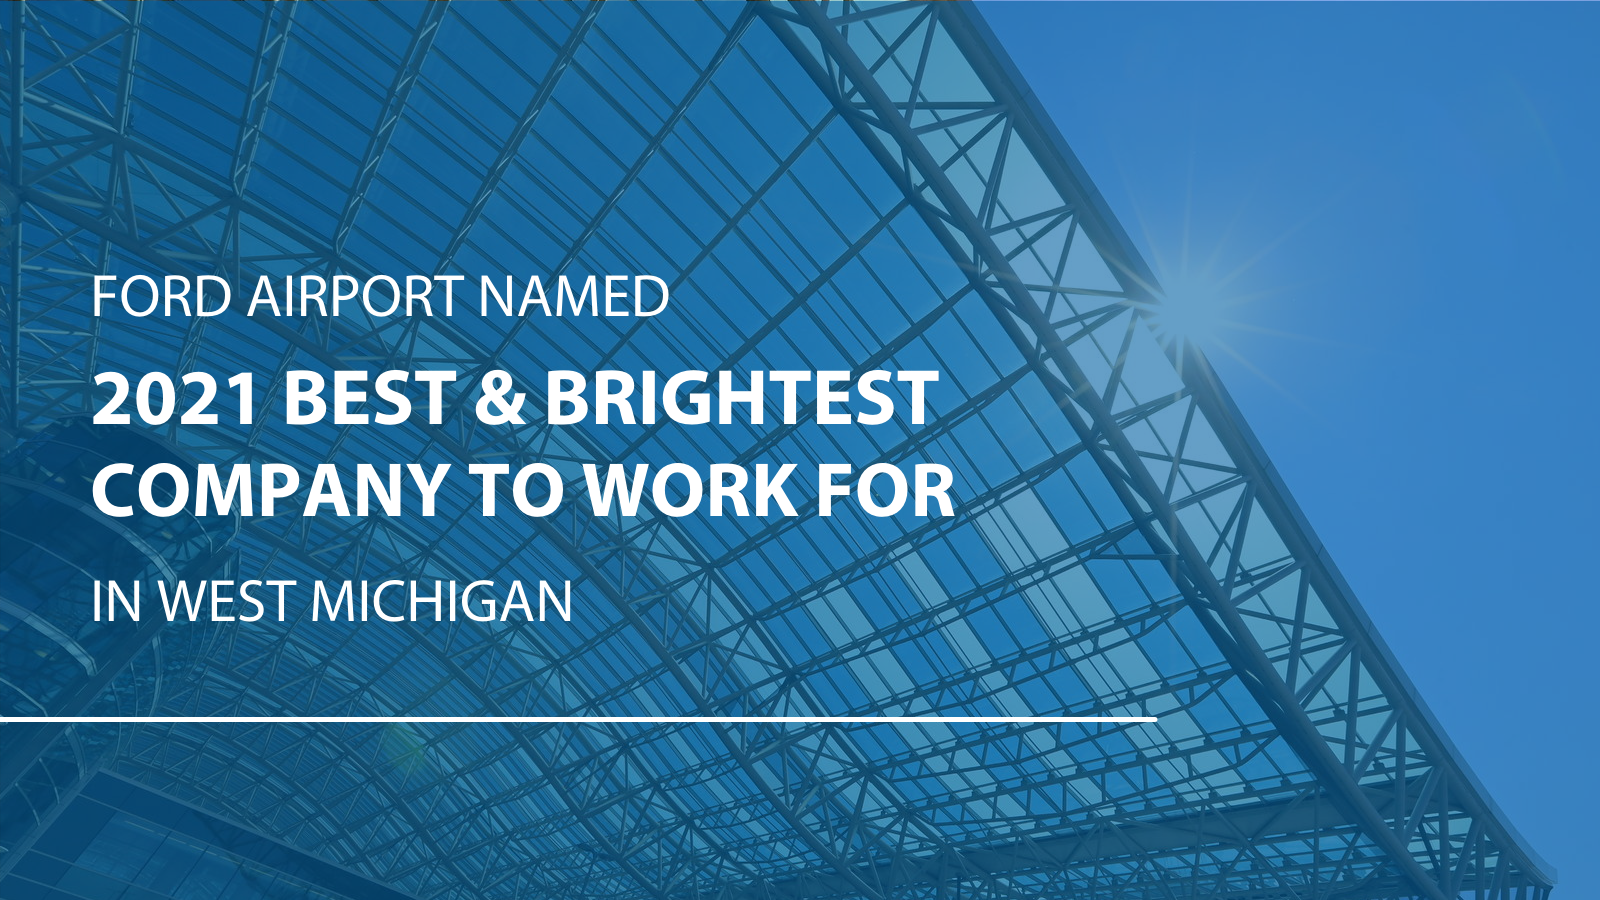 Ford Airport Named Best and Brightest Company to Work For